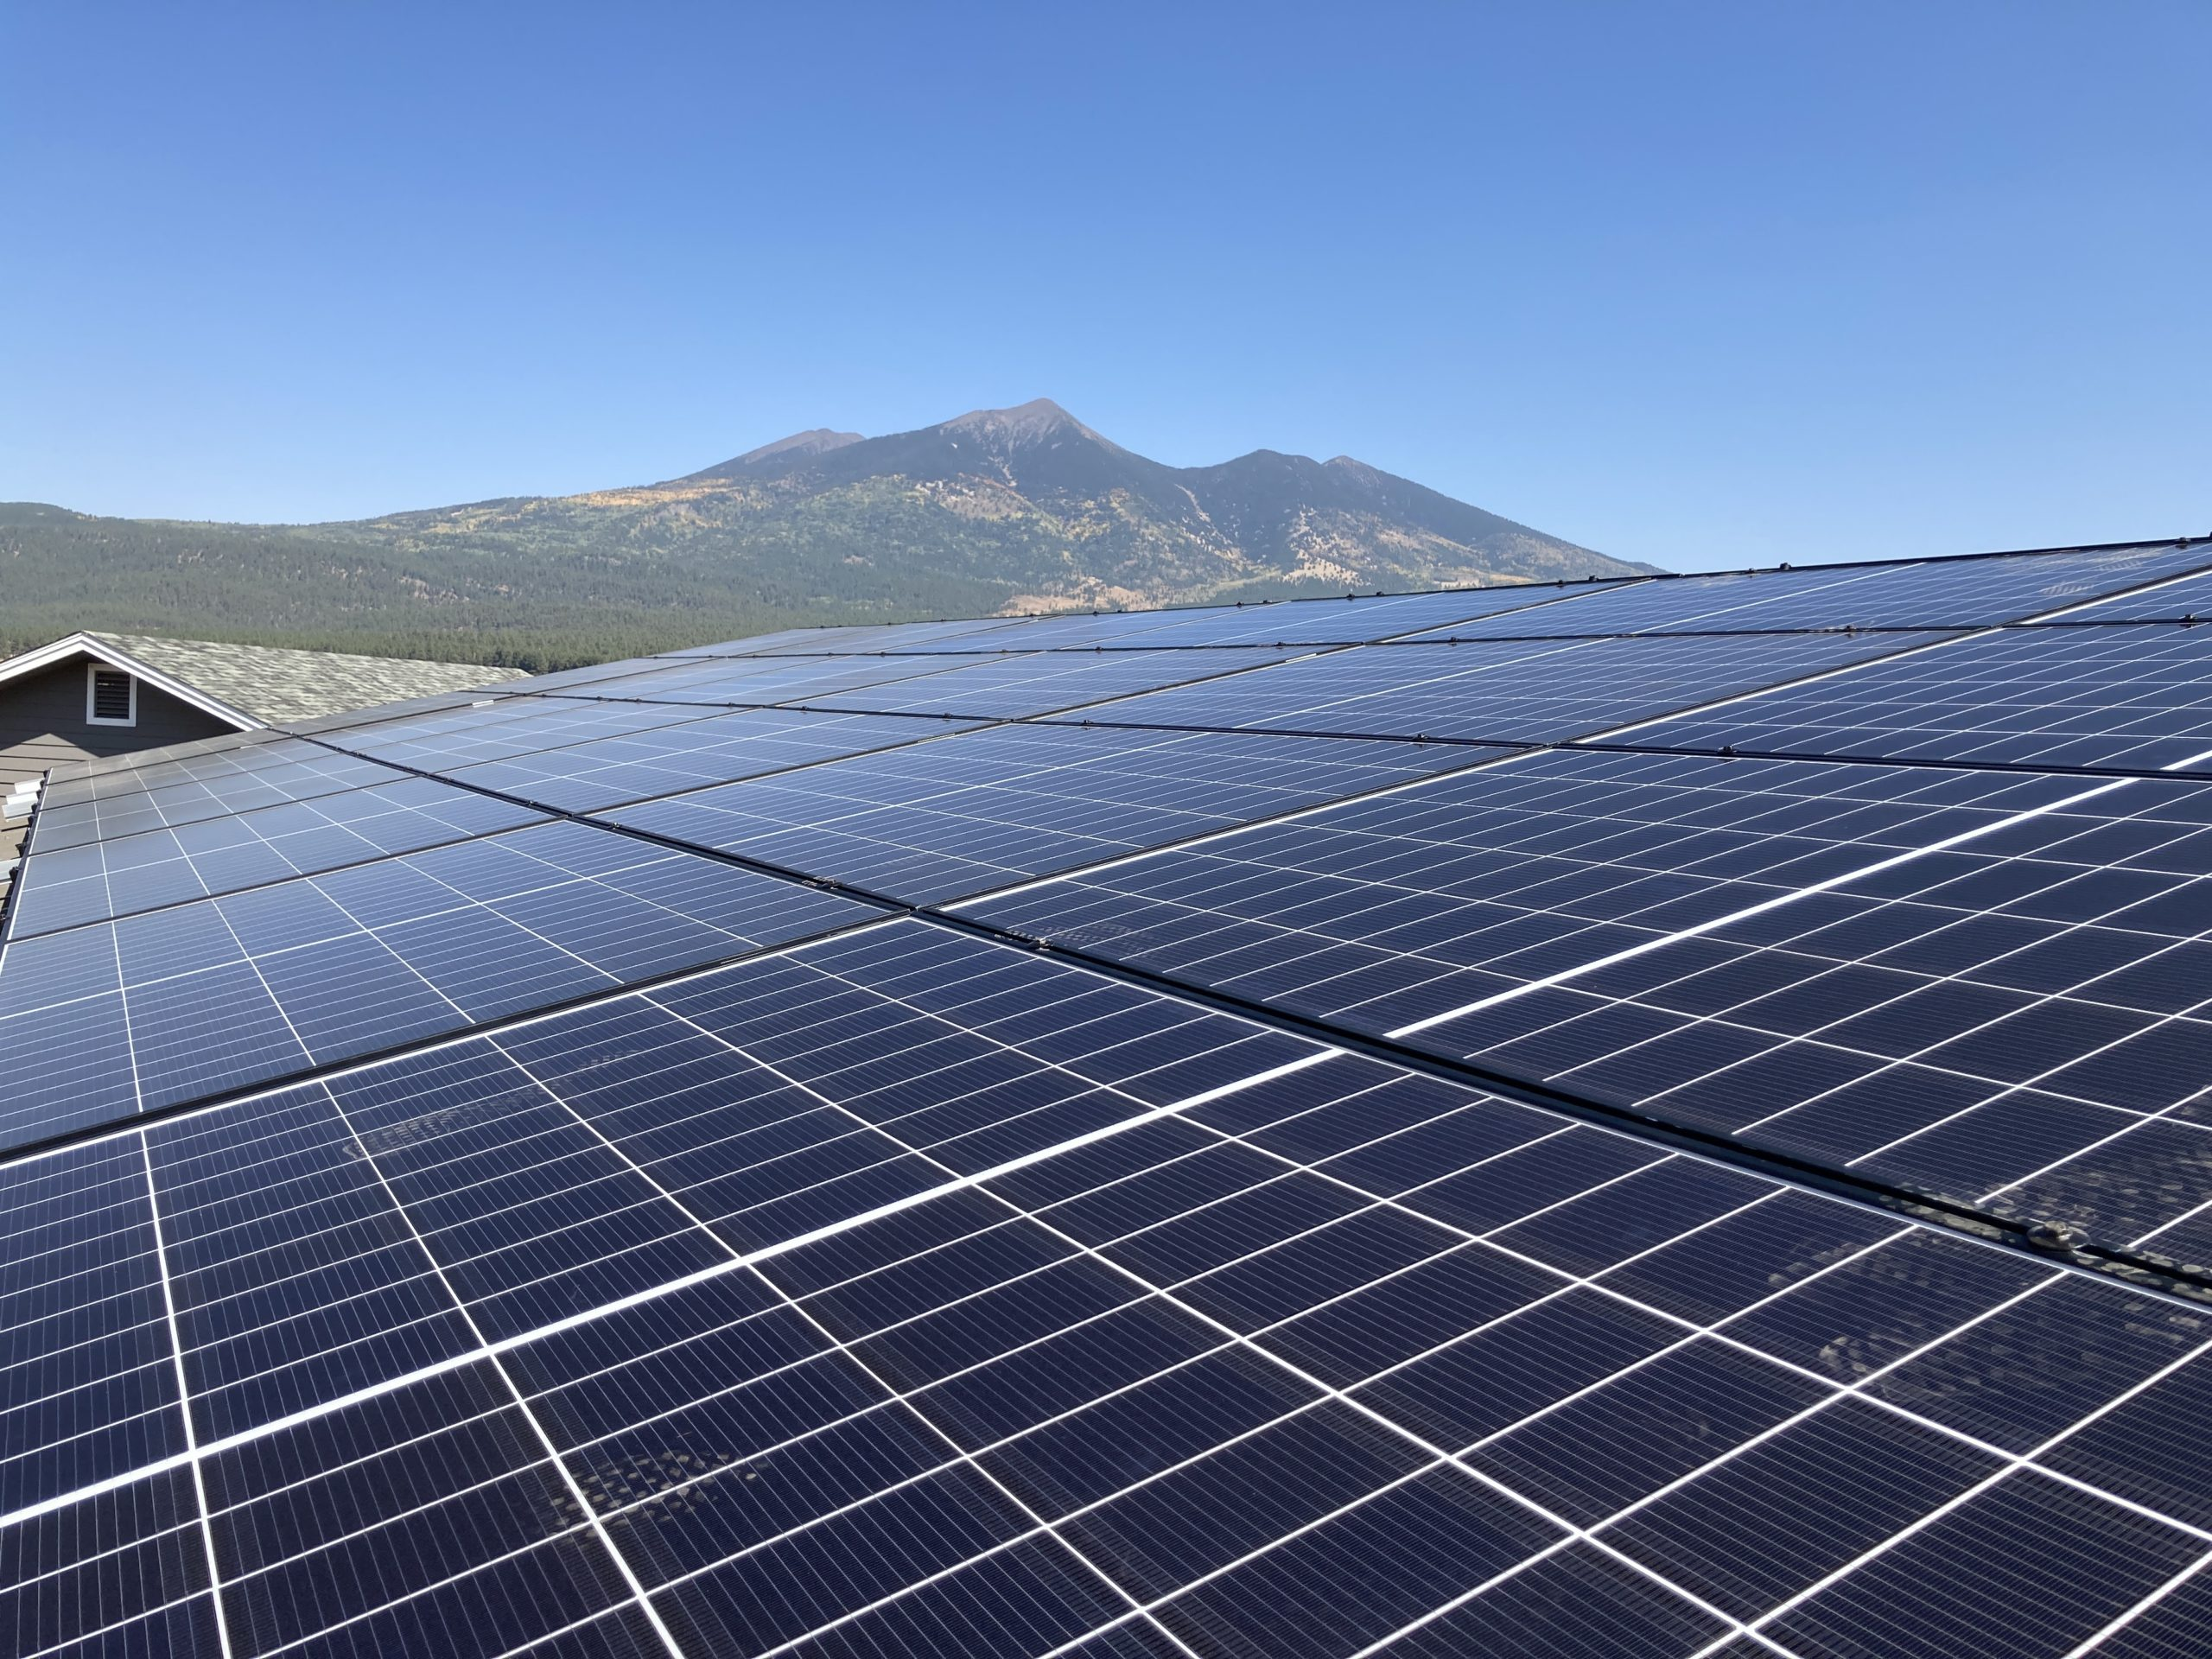 Solar Panels with Peaks in background